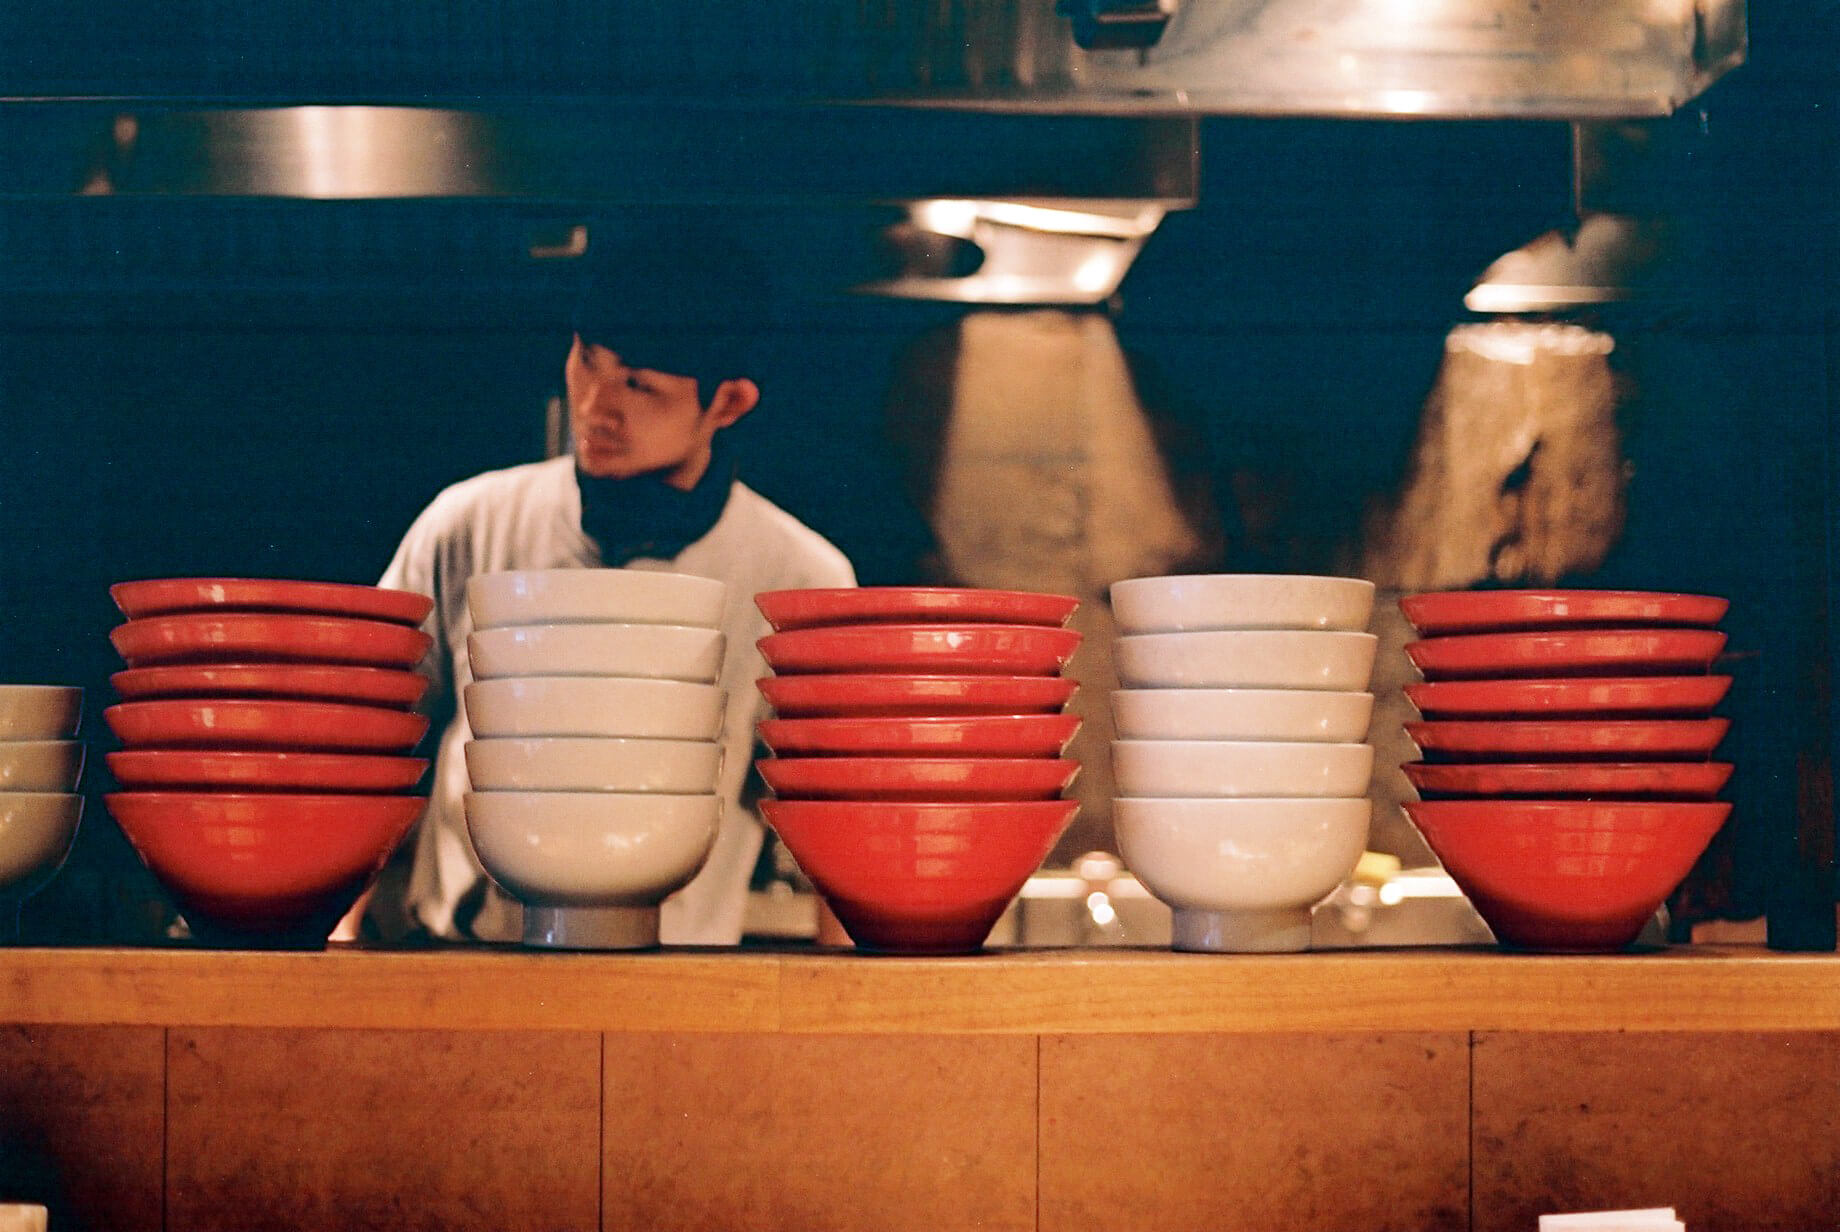 IPPUDO's red and white bowls, and the origin of their porcelain